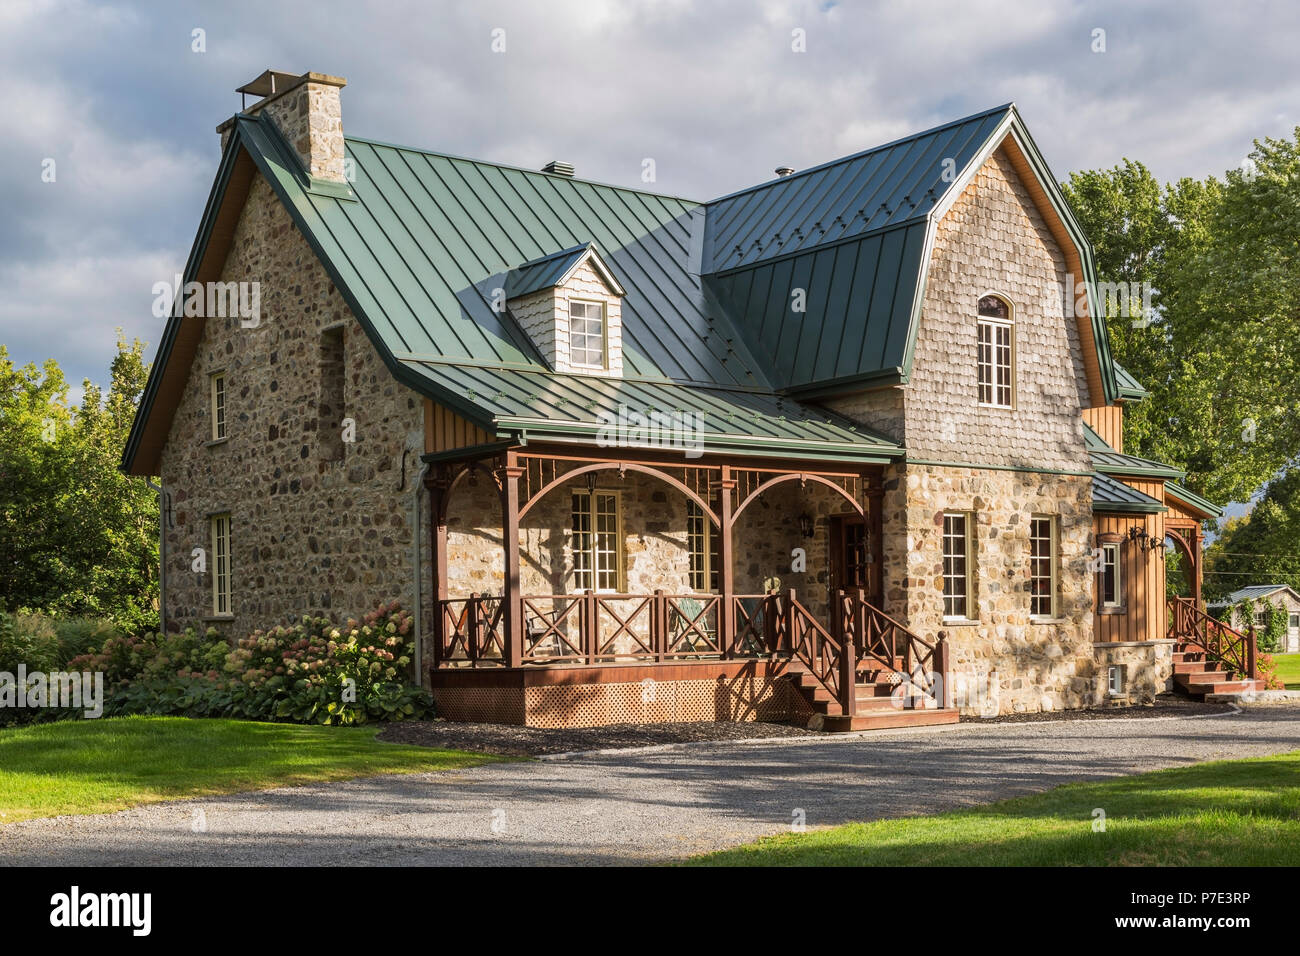 canadiana landhausstil fieldstone haus mit naht blech dach stockfoto bild 211137354 alamy. Black Bedroom Furniture Sets. Home Design Ideas